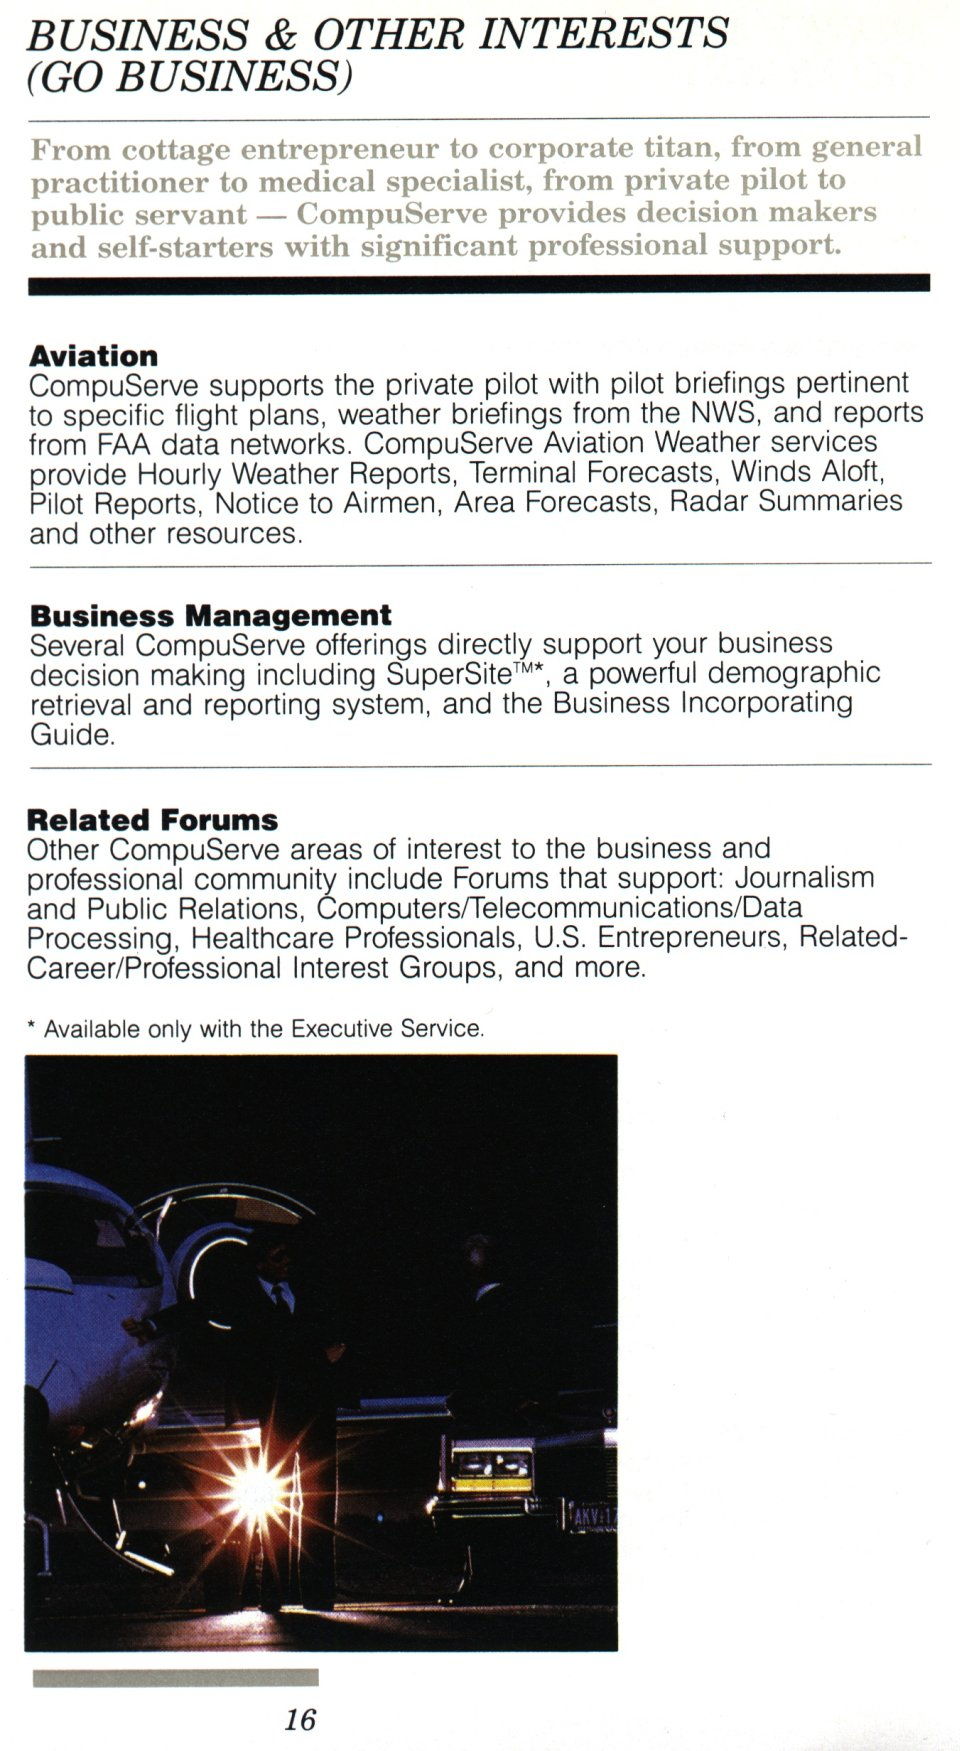 [CompuServe IntroPak page 16/44  Business & Other Interests (GO BUSINESS)]